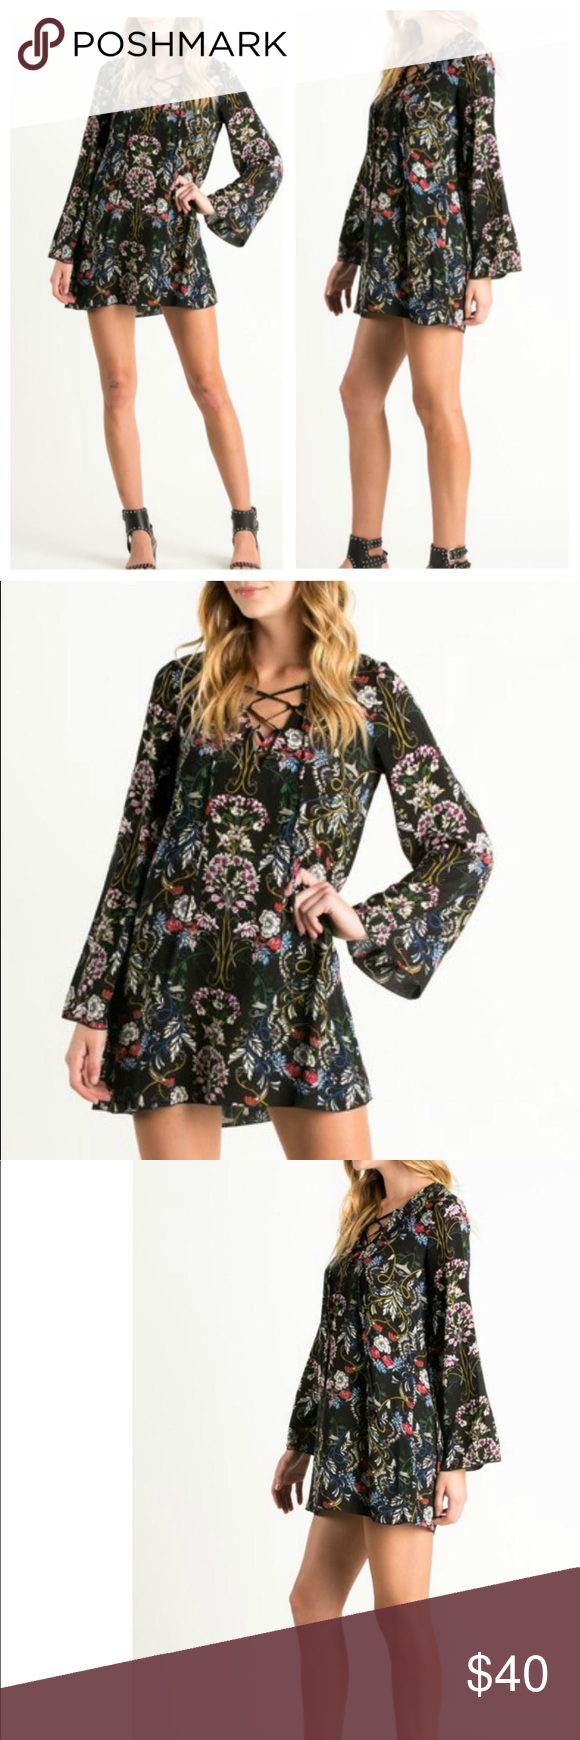 The Nora Lace Up Floral Print Tunic Dress Feminine eastern influence flower tunic with lace-up front, bell sleeves and a flowy swing. Brand, The Hanger Runs Small 100% Rayon Size & Fit Loose fit intended. Model is wearing size small. Model's height 5'9, bust 32, waist 23, hips 33. The Hanger Dresses Mini